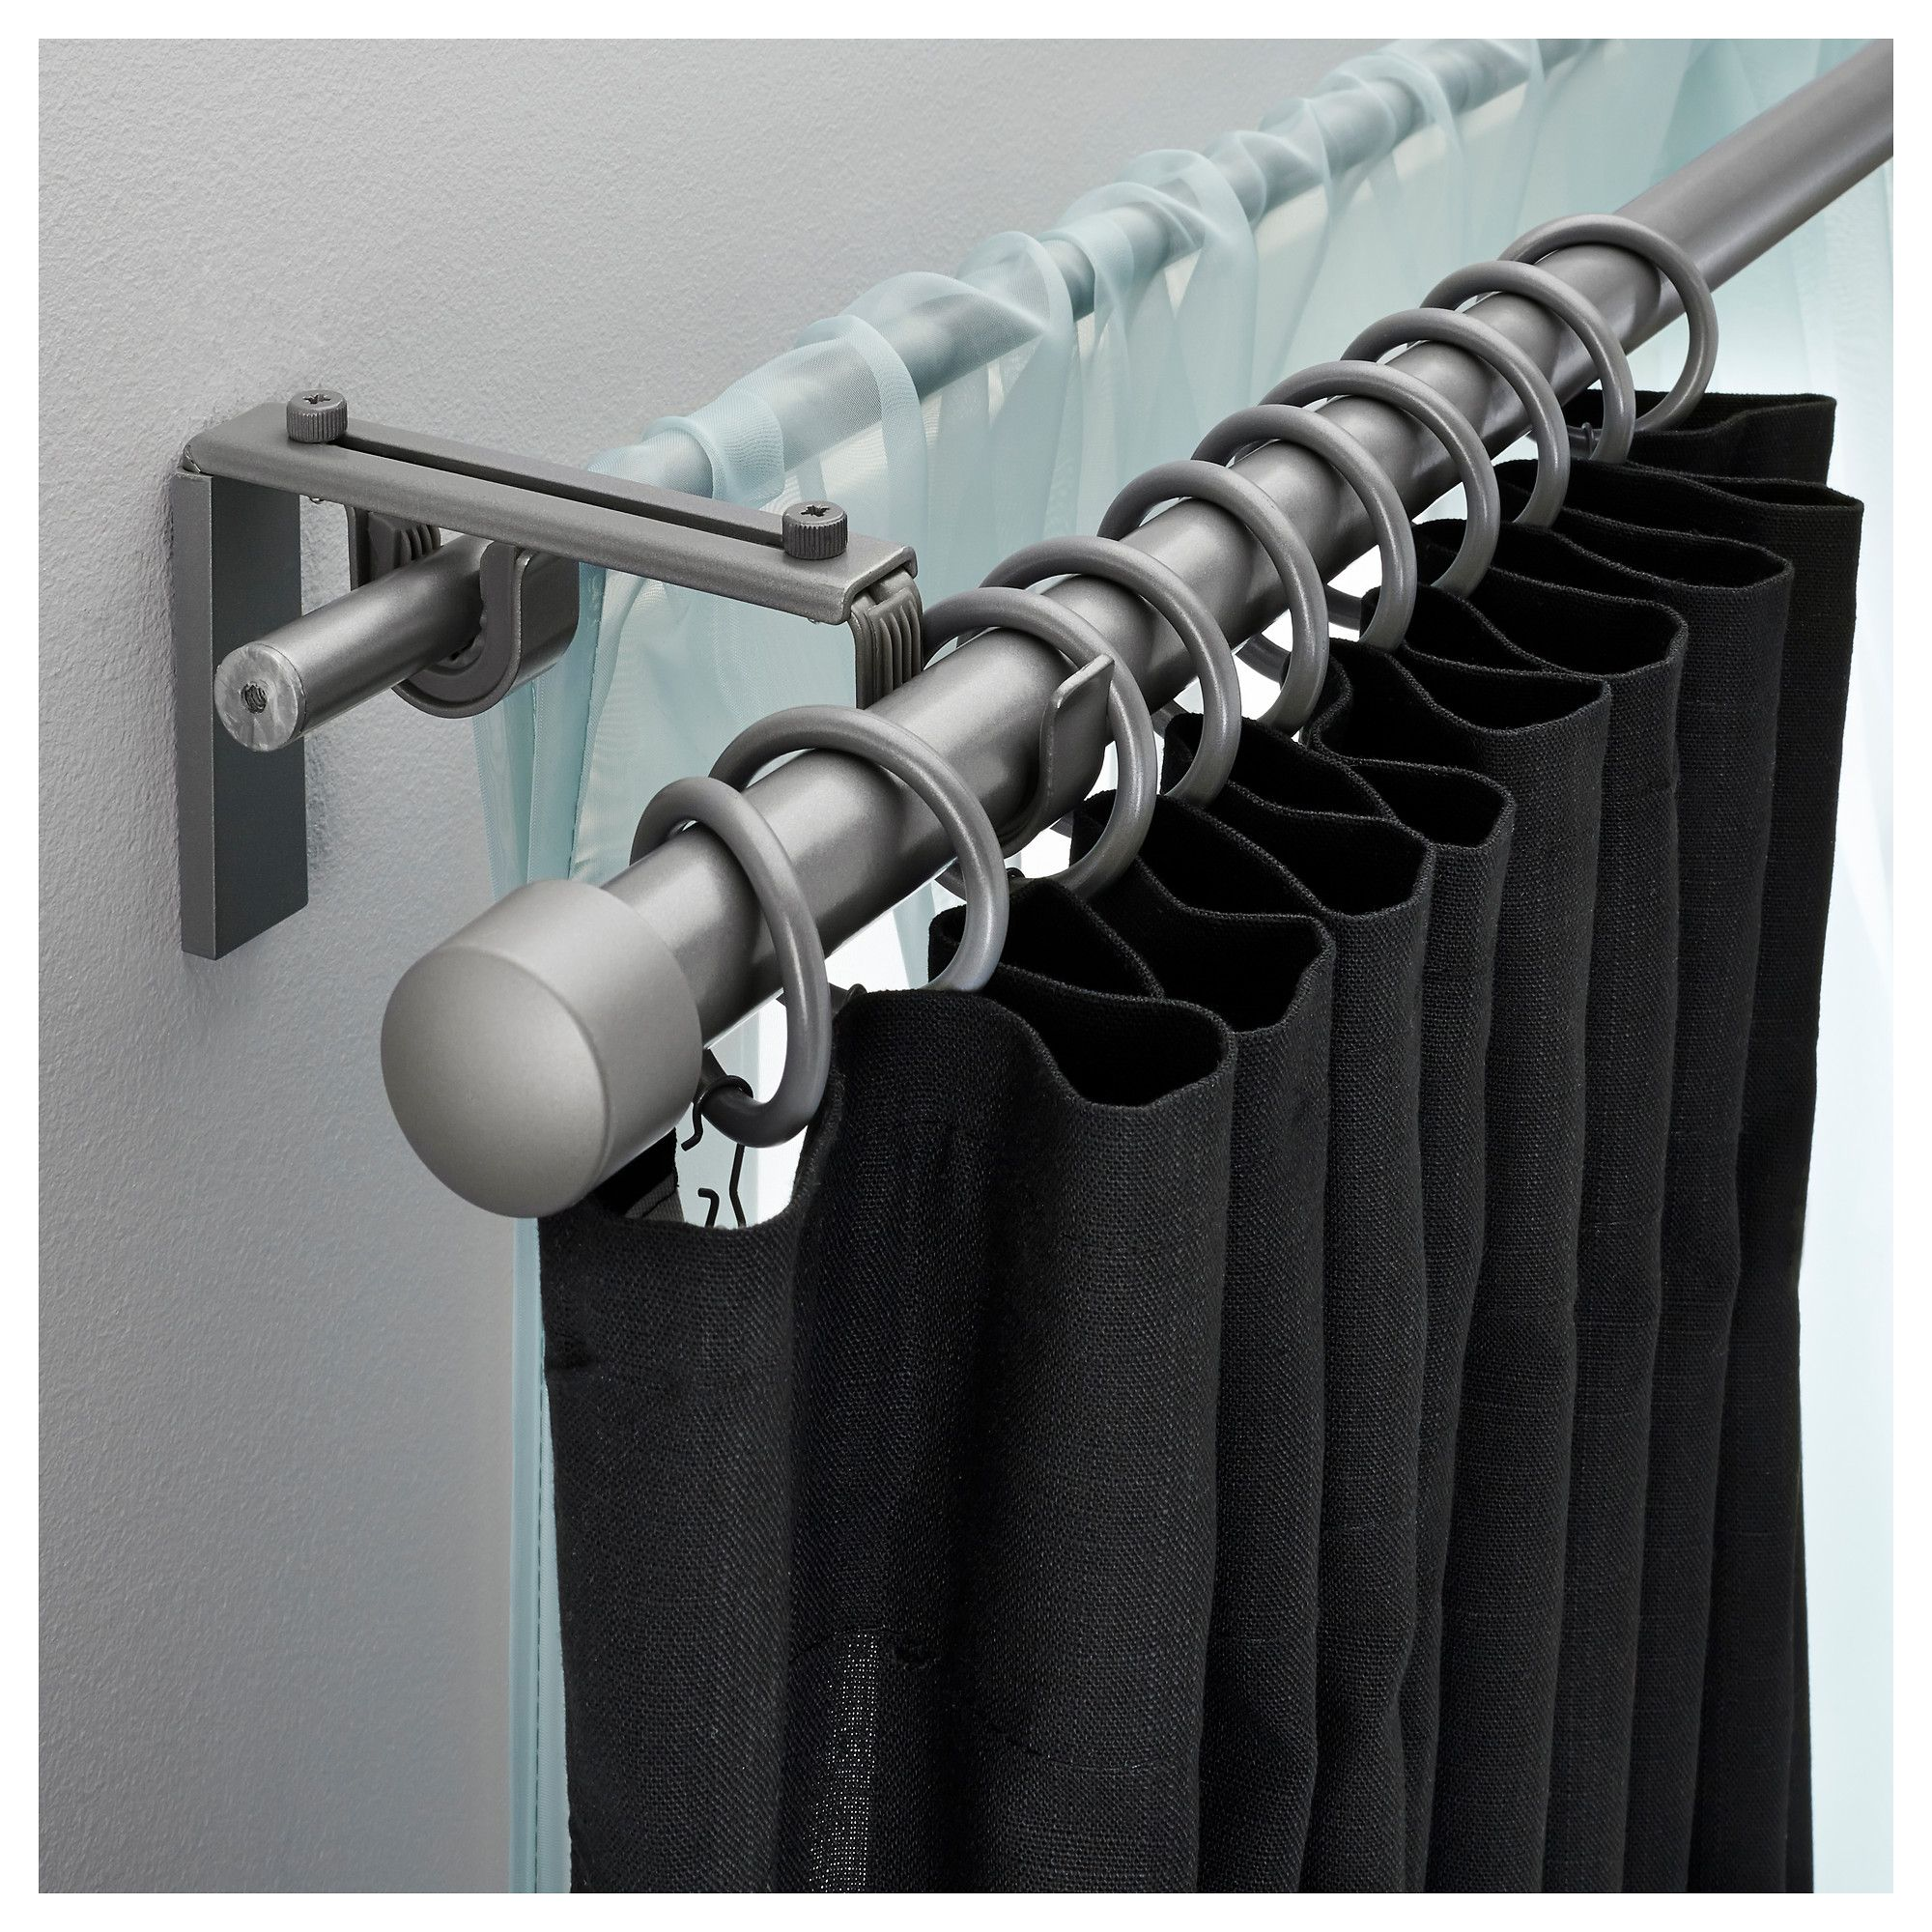 Double curtain rods with curtains - R Cka Hugad Double Curtain Rod Set Ikea Affordable Rod System For Sheer Plus Blackout